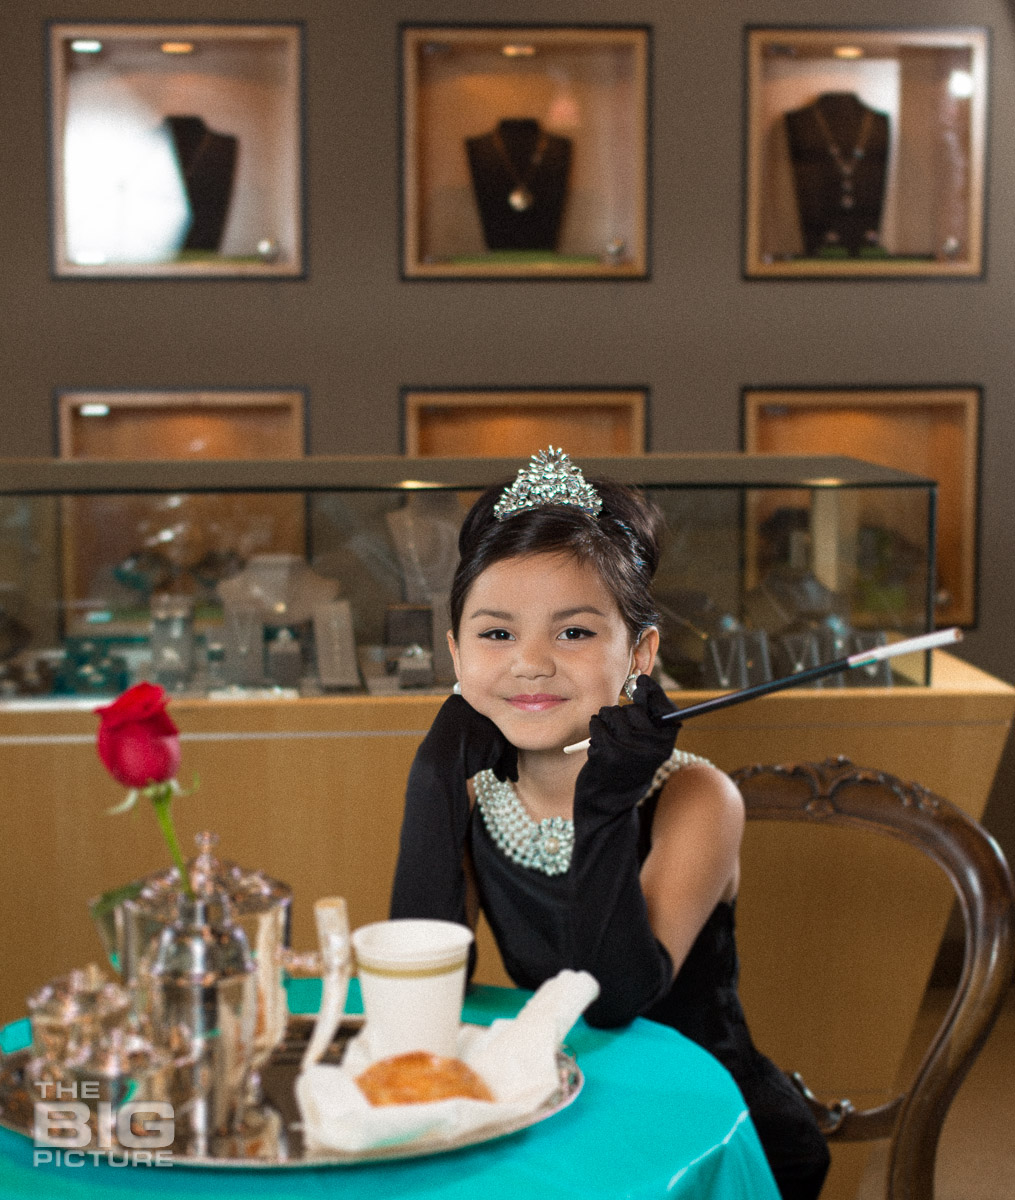 Children's Photography - Kids Photography - Ava sitting at the table in a jewellery shop